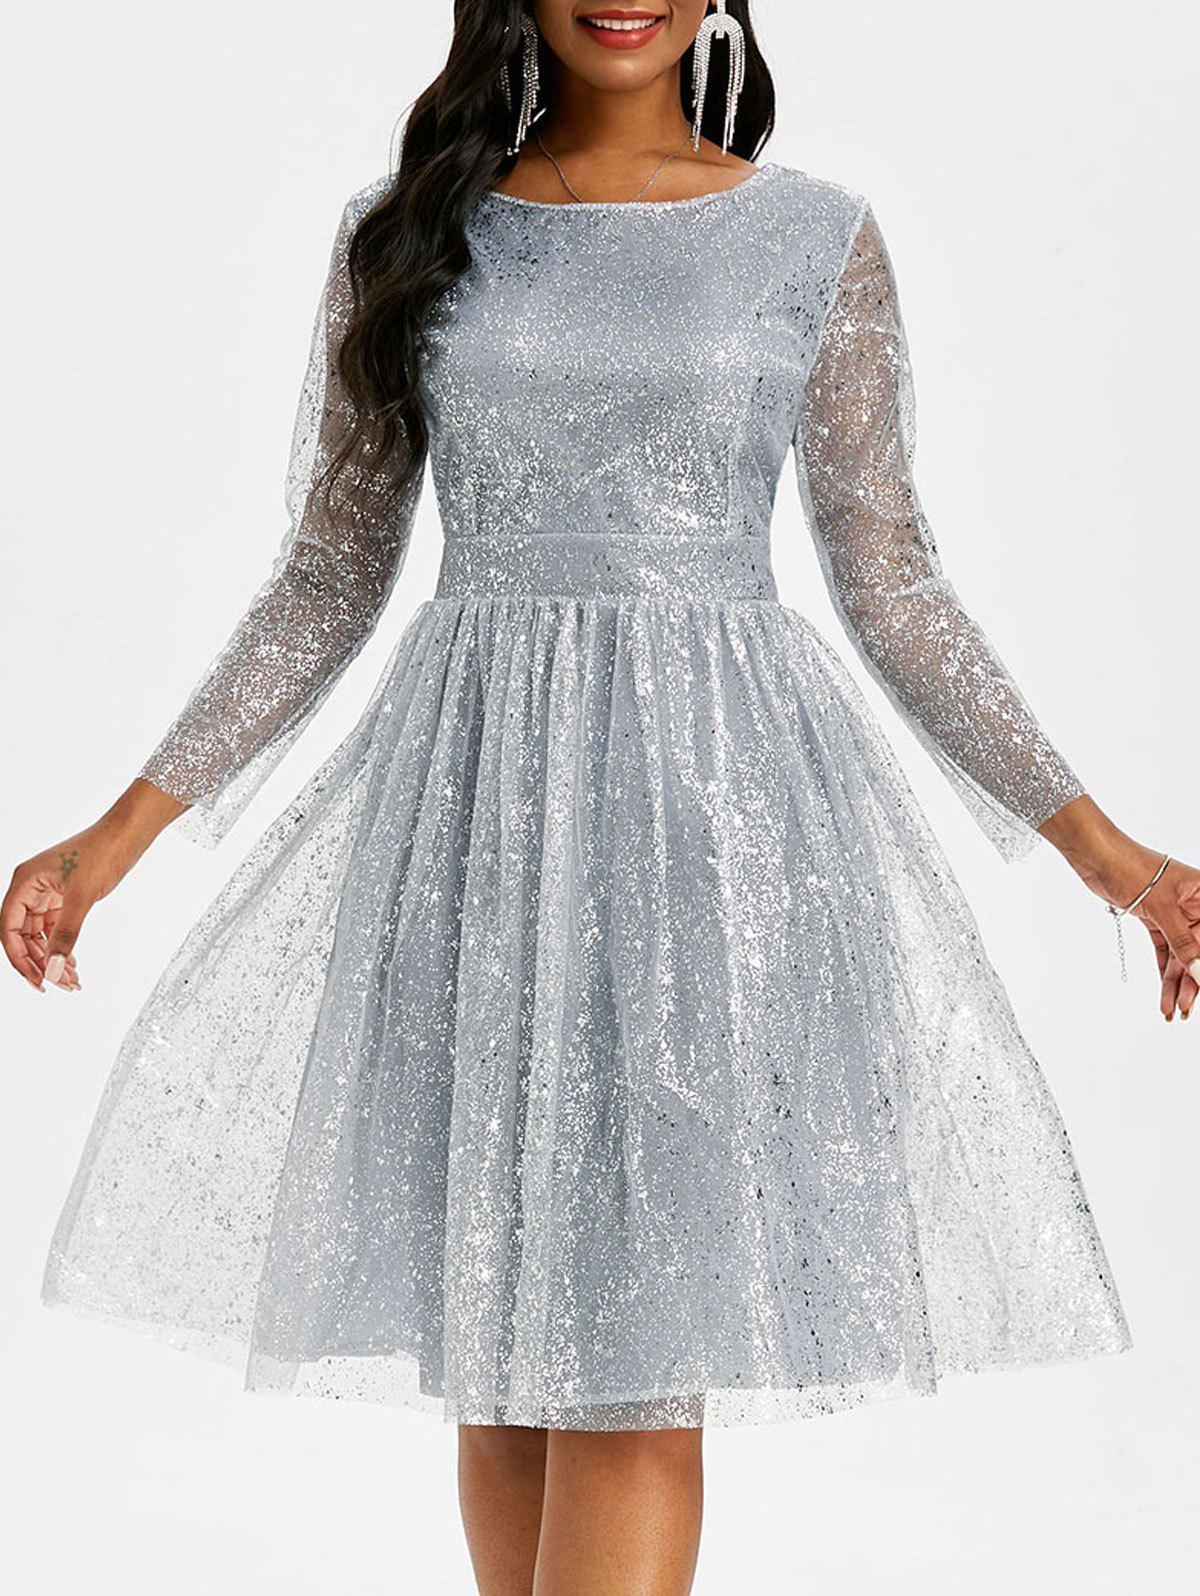 Shop Sparkly Sequined Mesh Overlay Open Back Ball Gown Dress